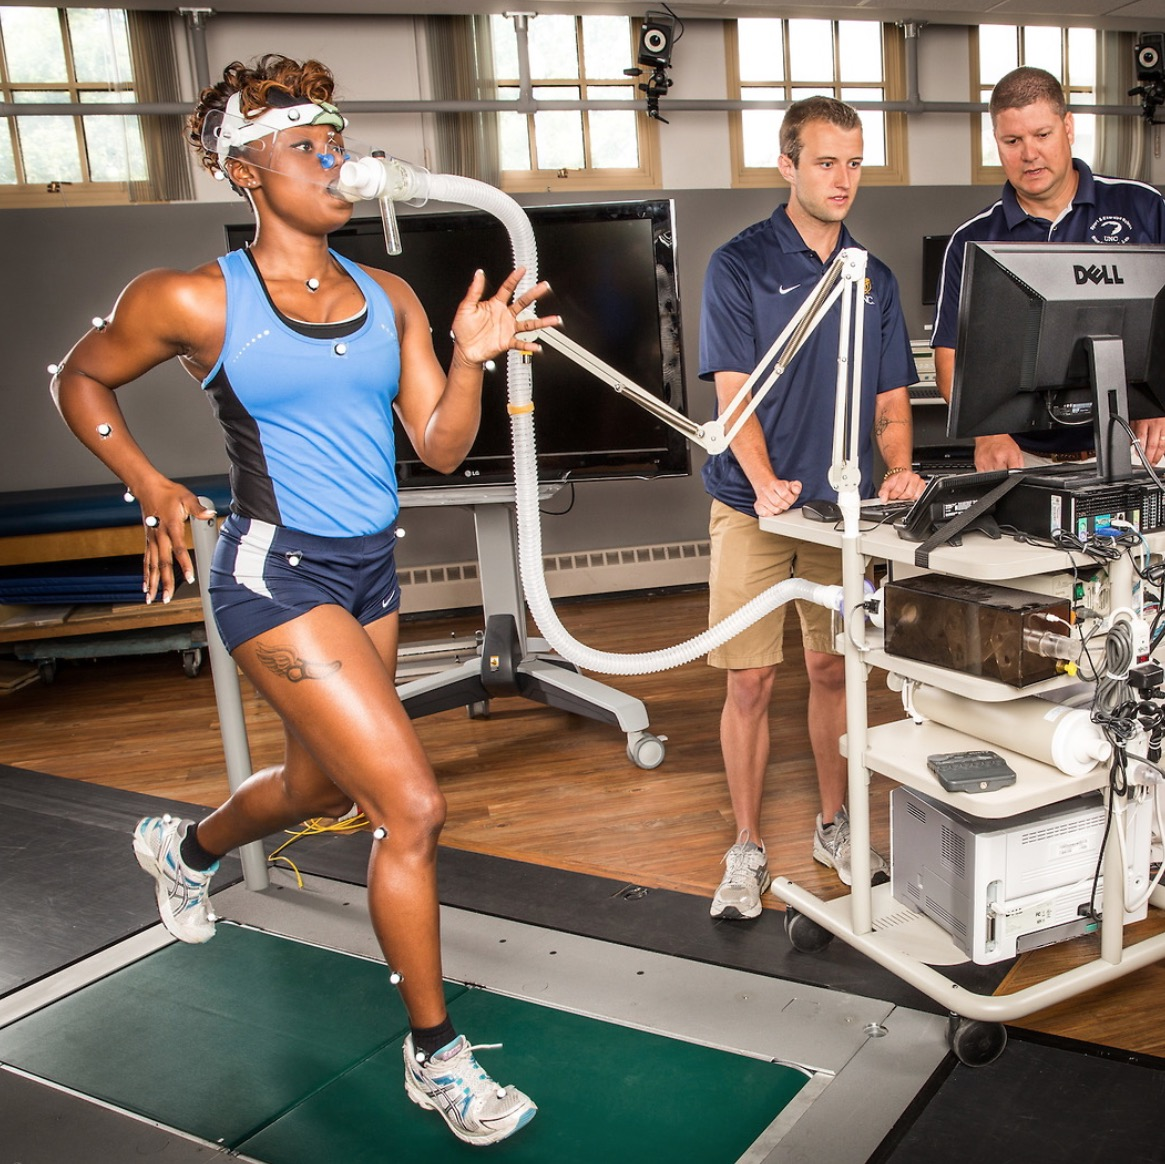 Graduate Research - Sport and Exercise Science